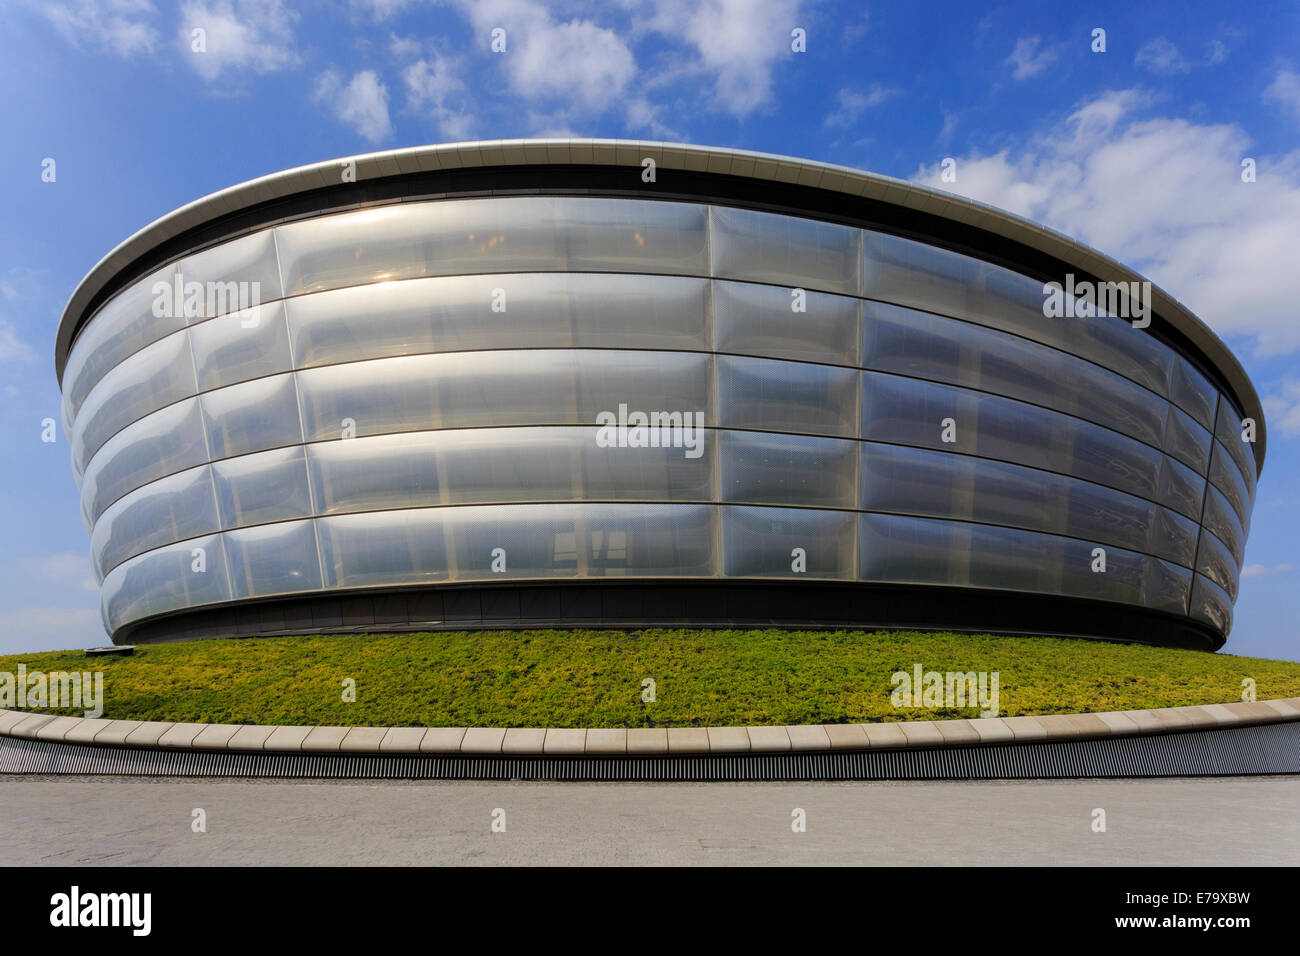 SSE Hydro concert hall, Glasgow, Scotland, UK - Stock Image